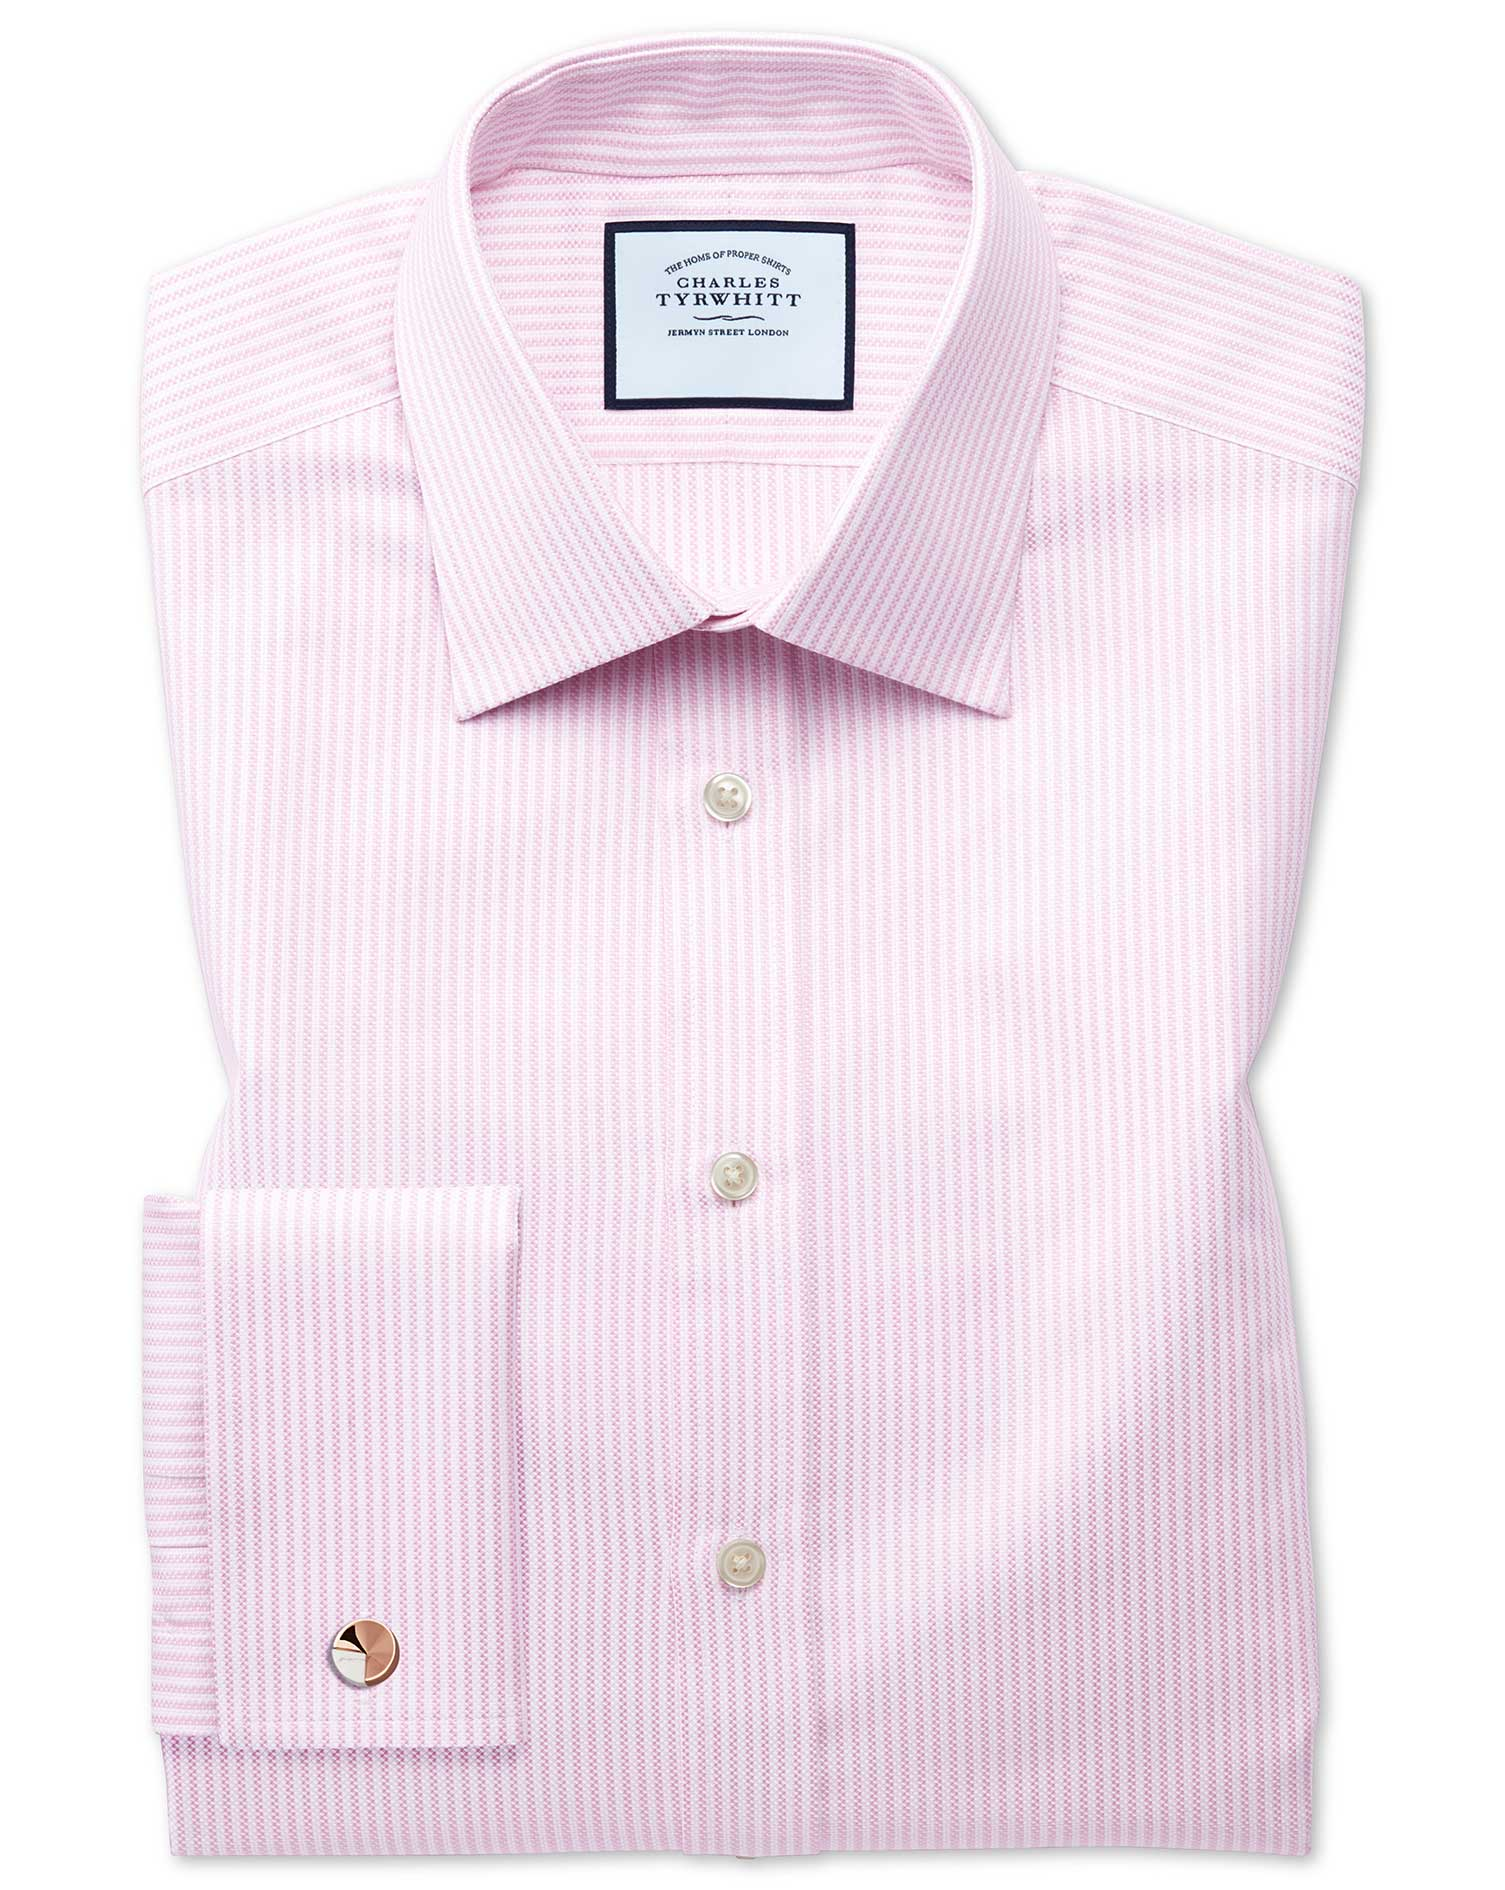 Classic Fit Egyptian Cotton Royal Oxford Pink and White Stripe Formal Shirt Single Cuff Size 17/37 b